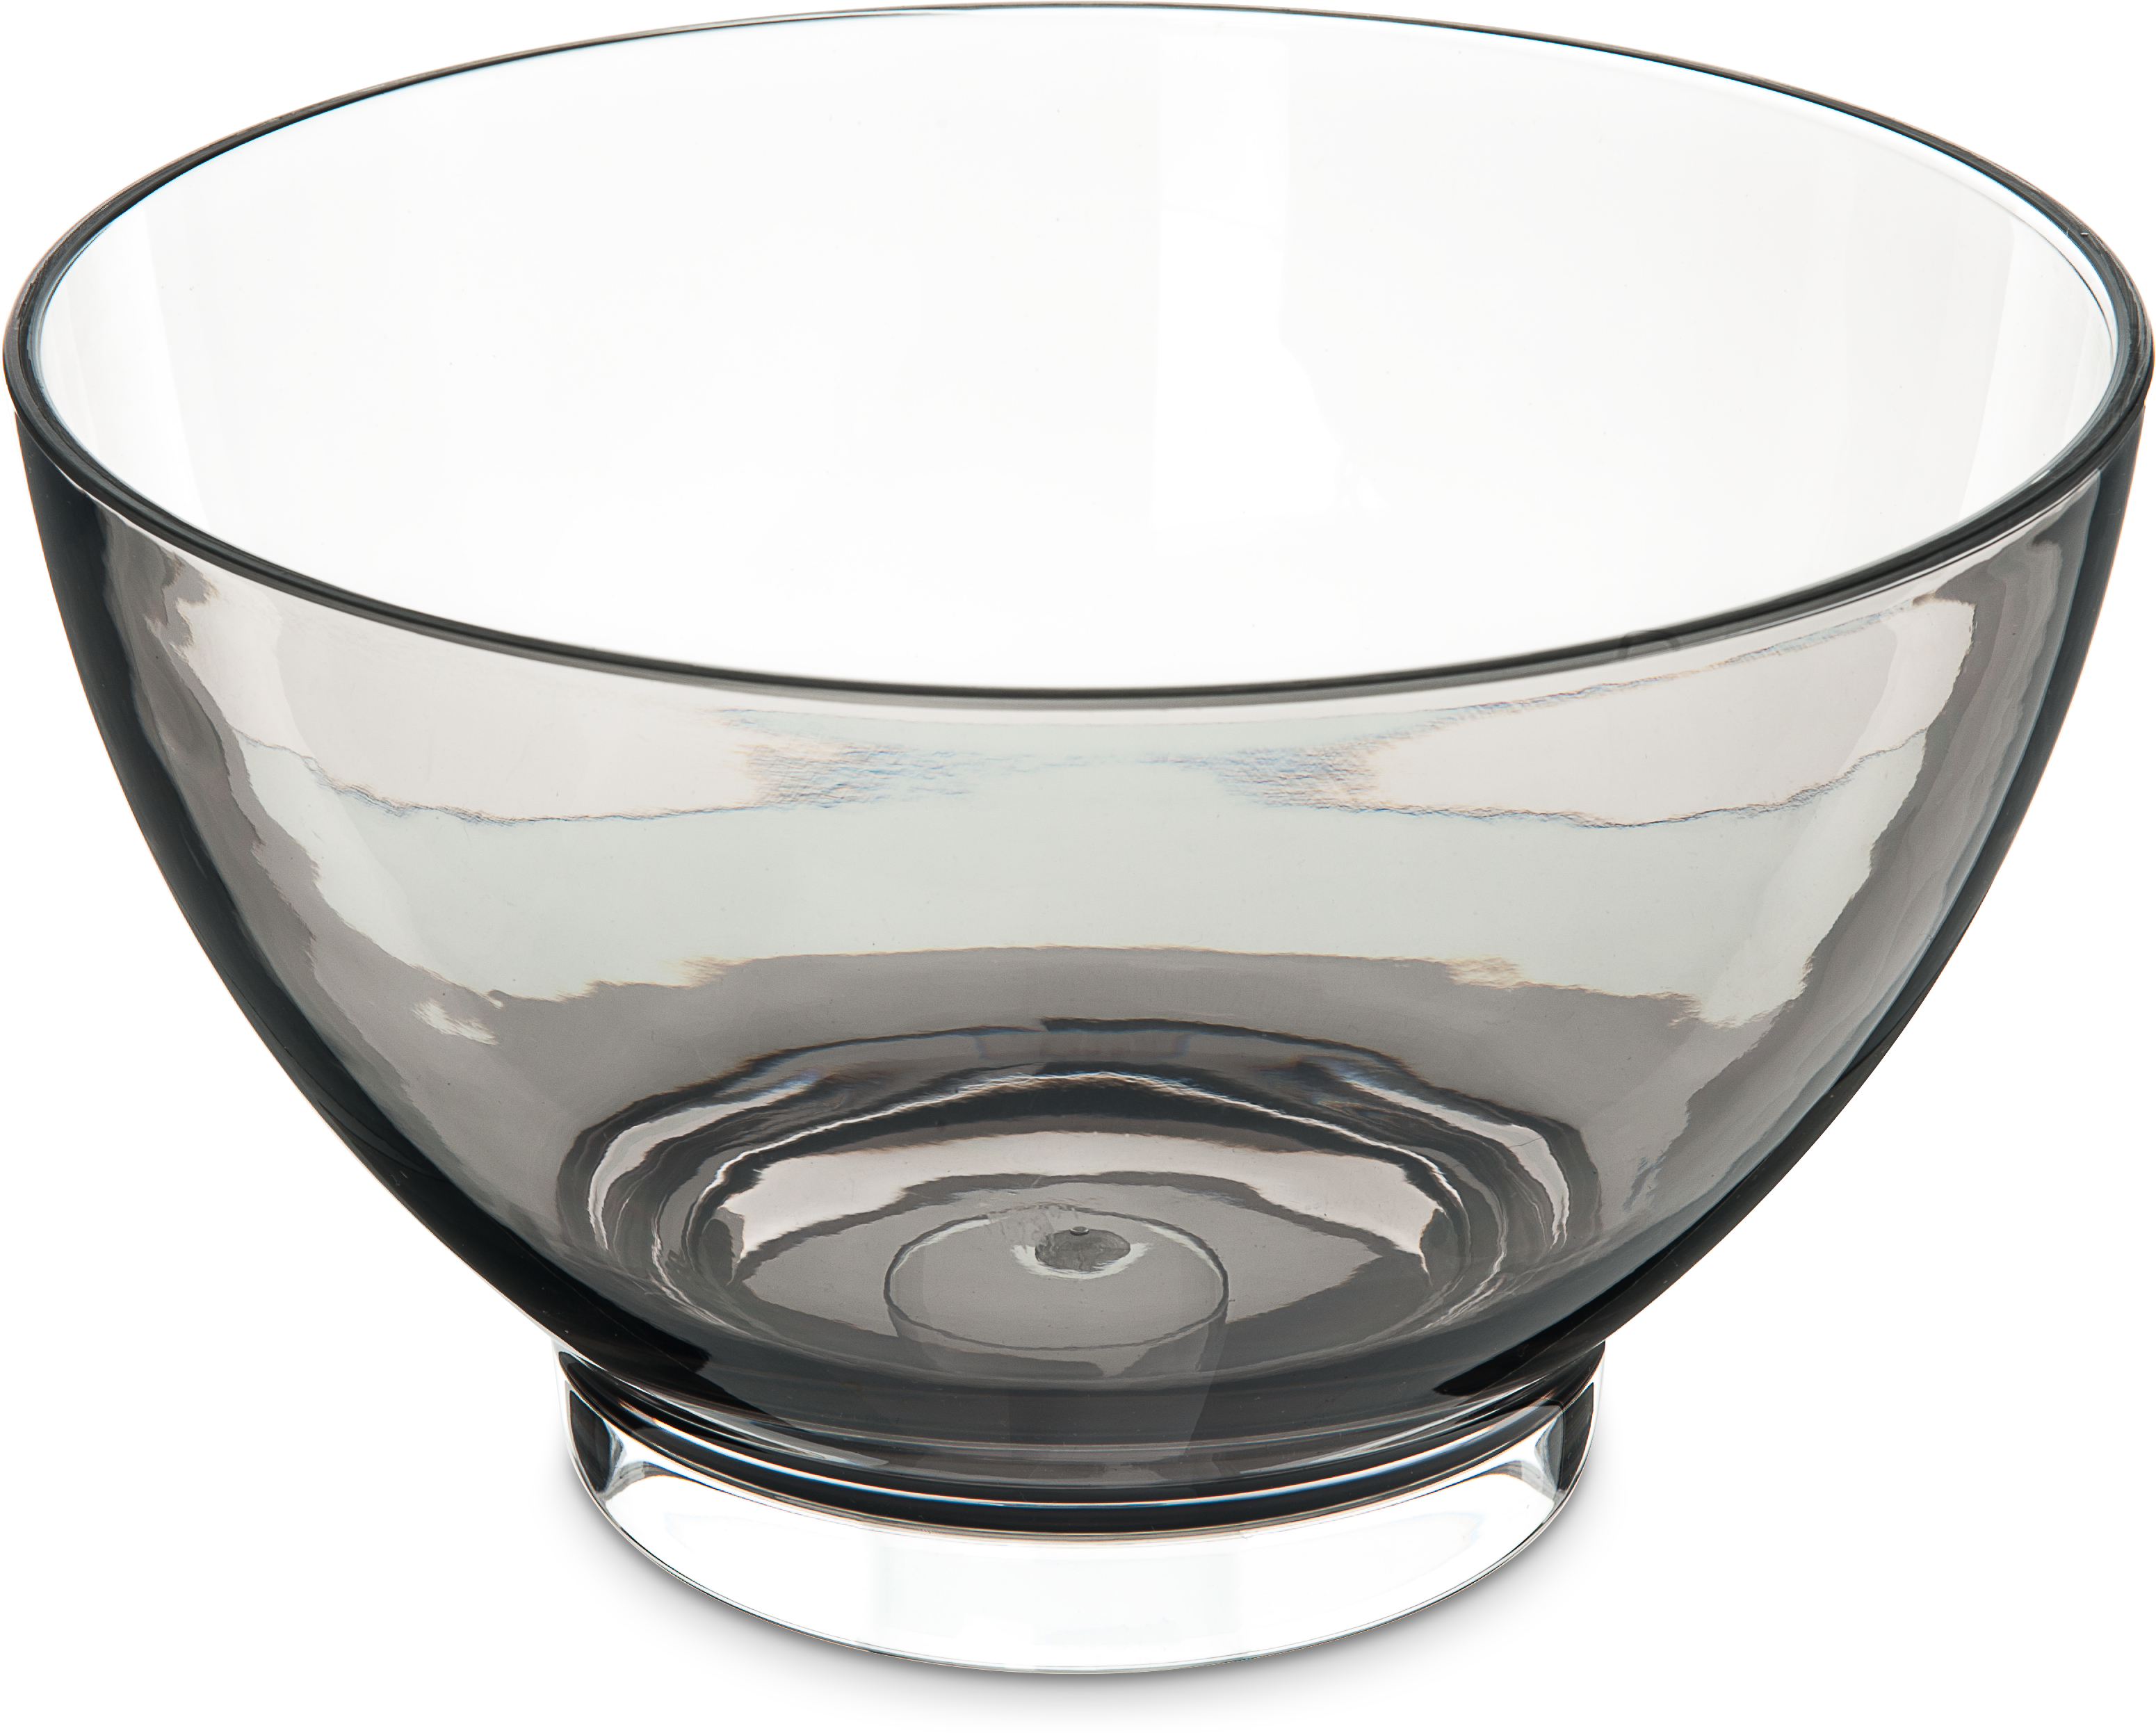 Epicure Cased Bowl 10 - Smoke